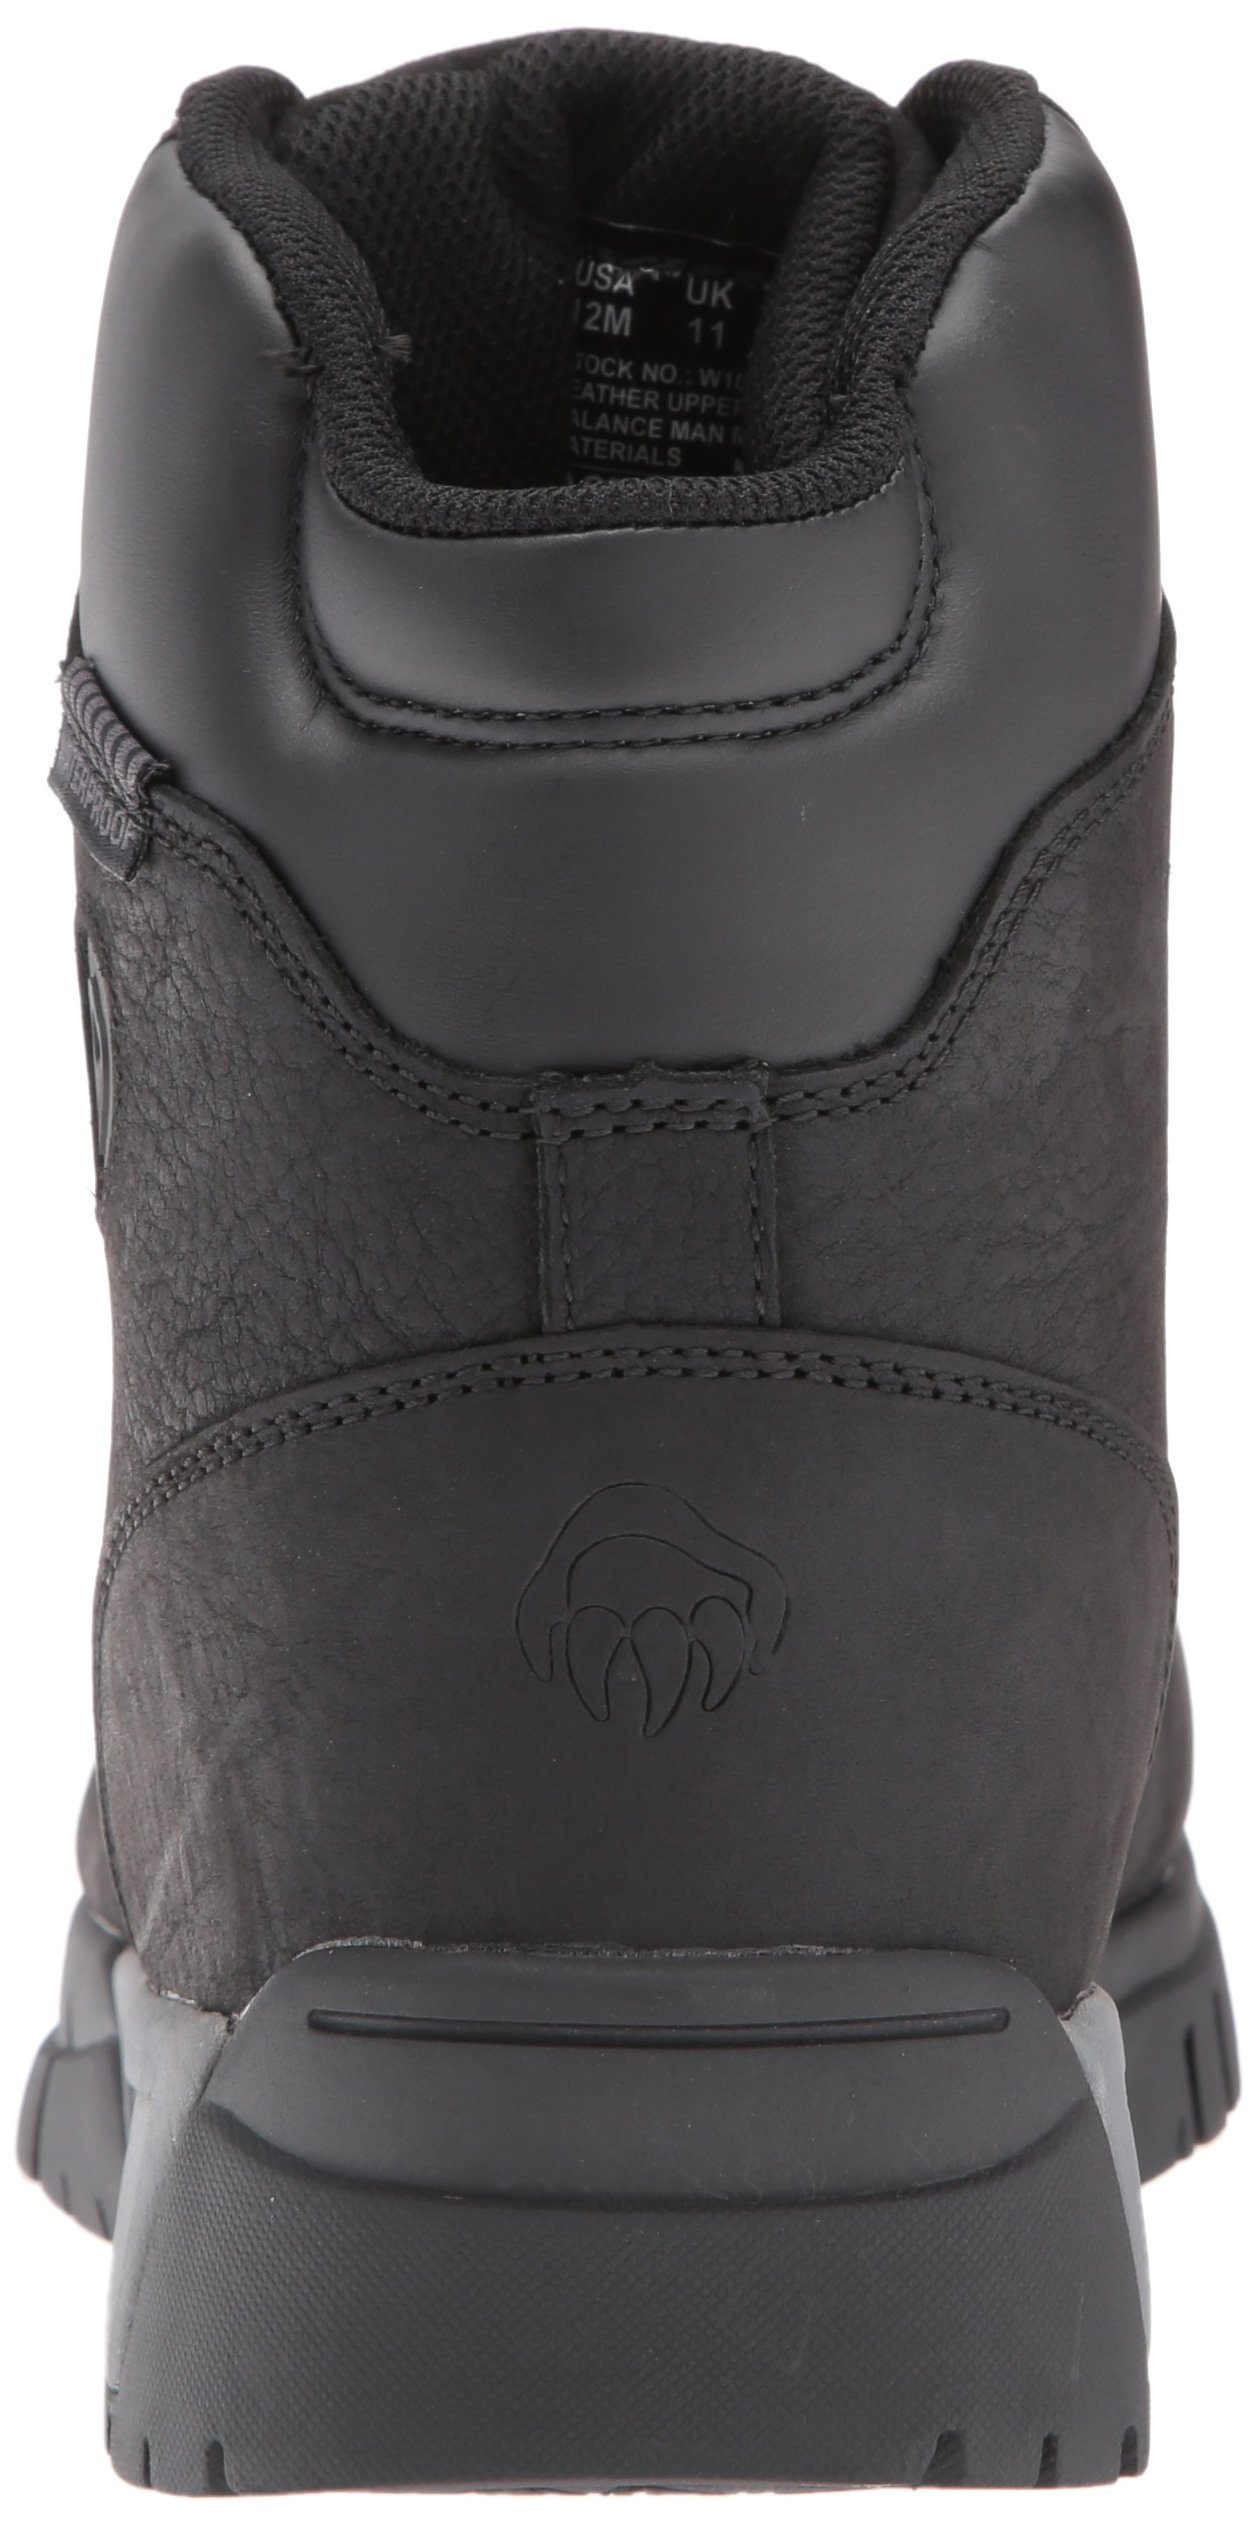 Wolverine Men's Mauler LX Composite Toe Waterproof Work Boot Black 7 W US by Wolverine (Image #2)